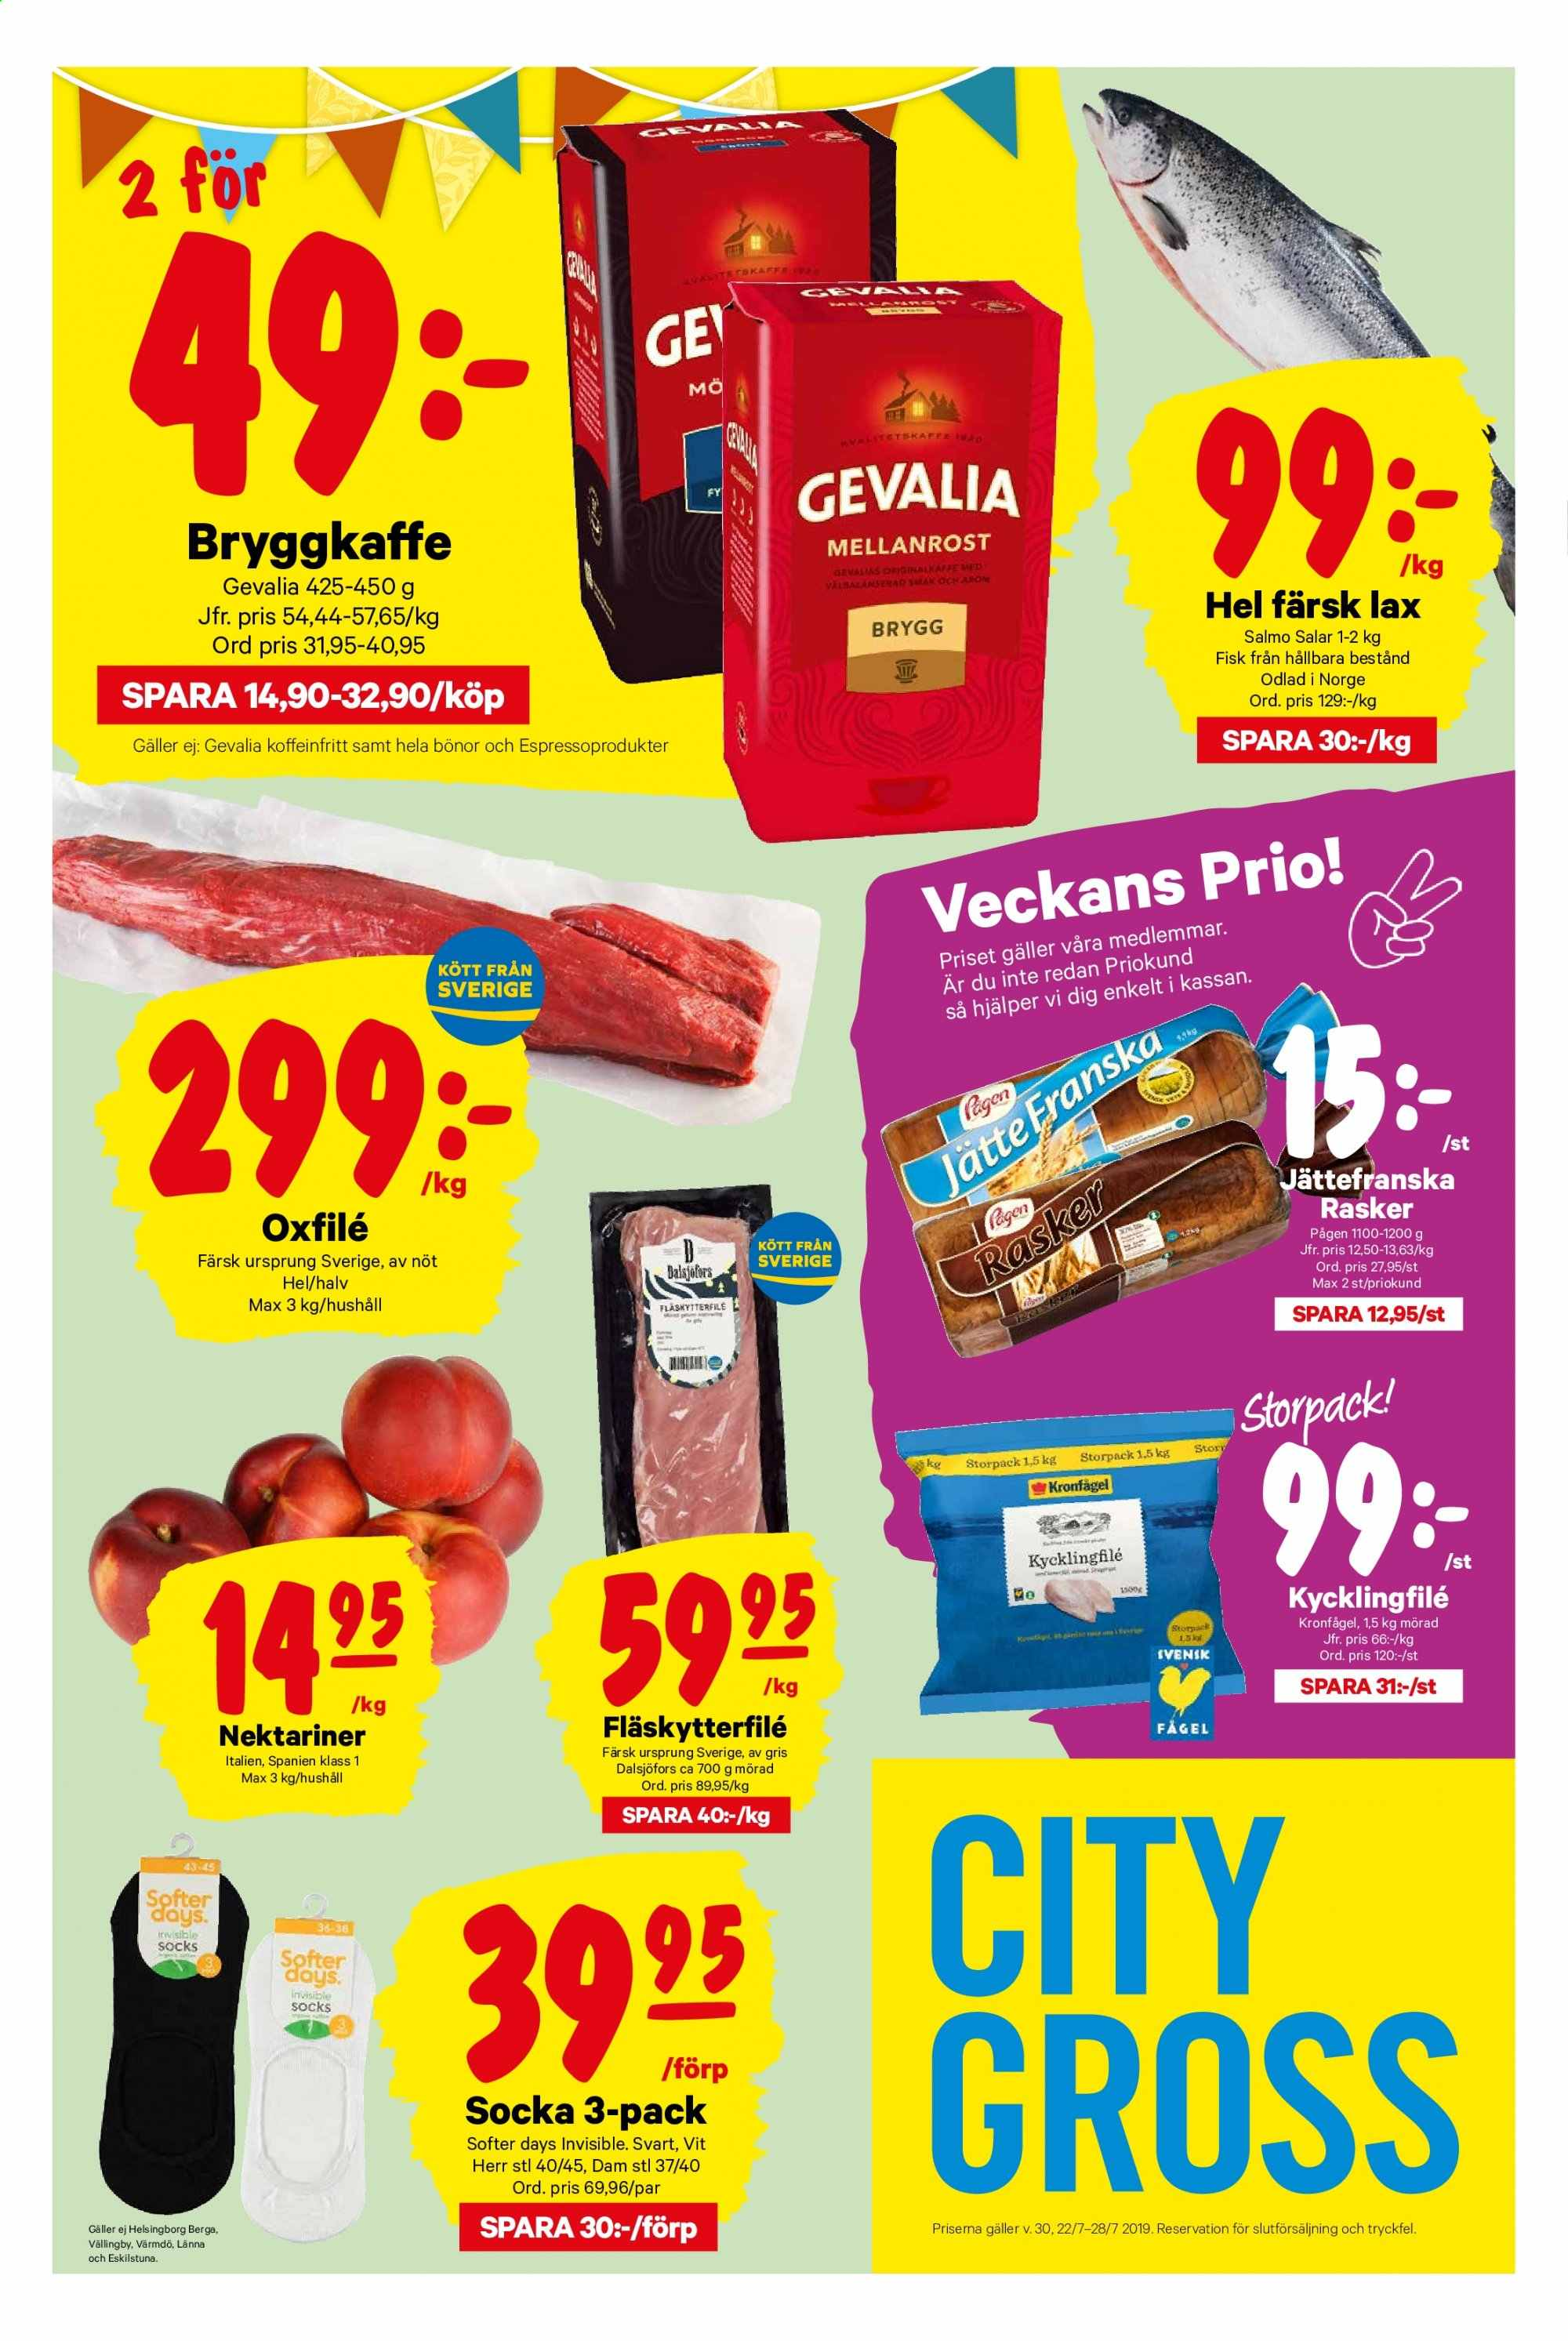 City Gross reklamblad - 22/7 2019 - 28/7 2019. Sida 1.